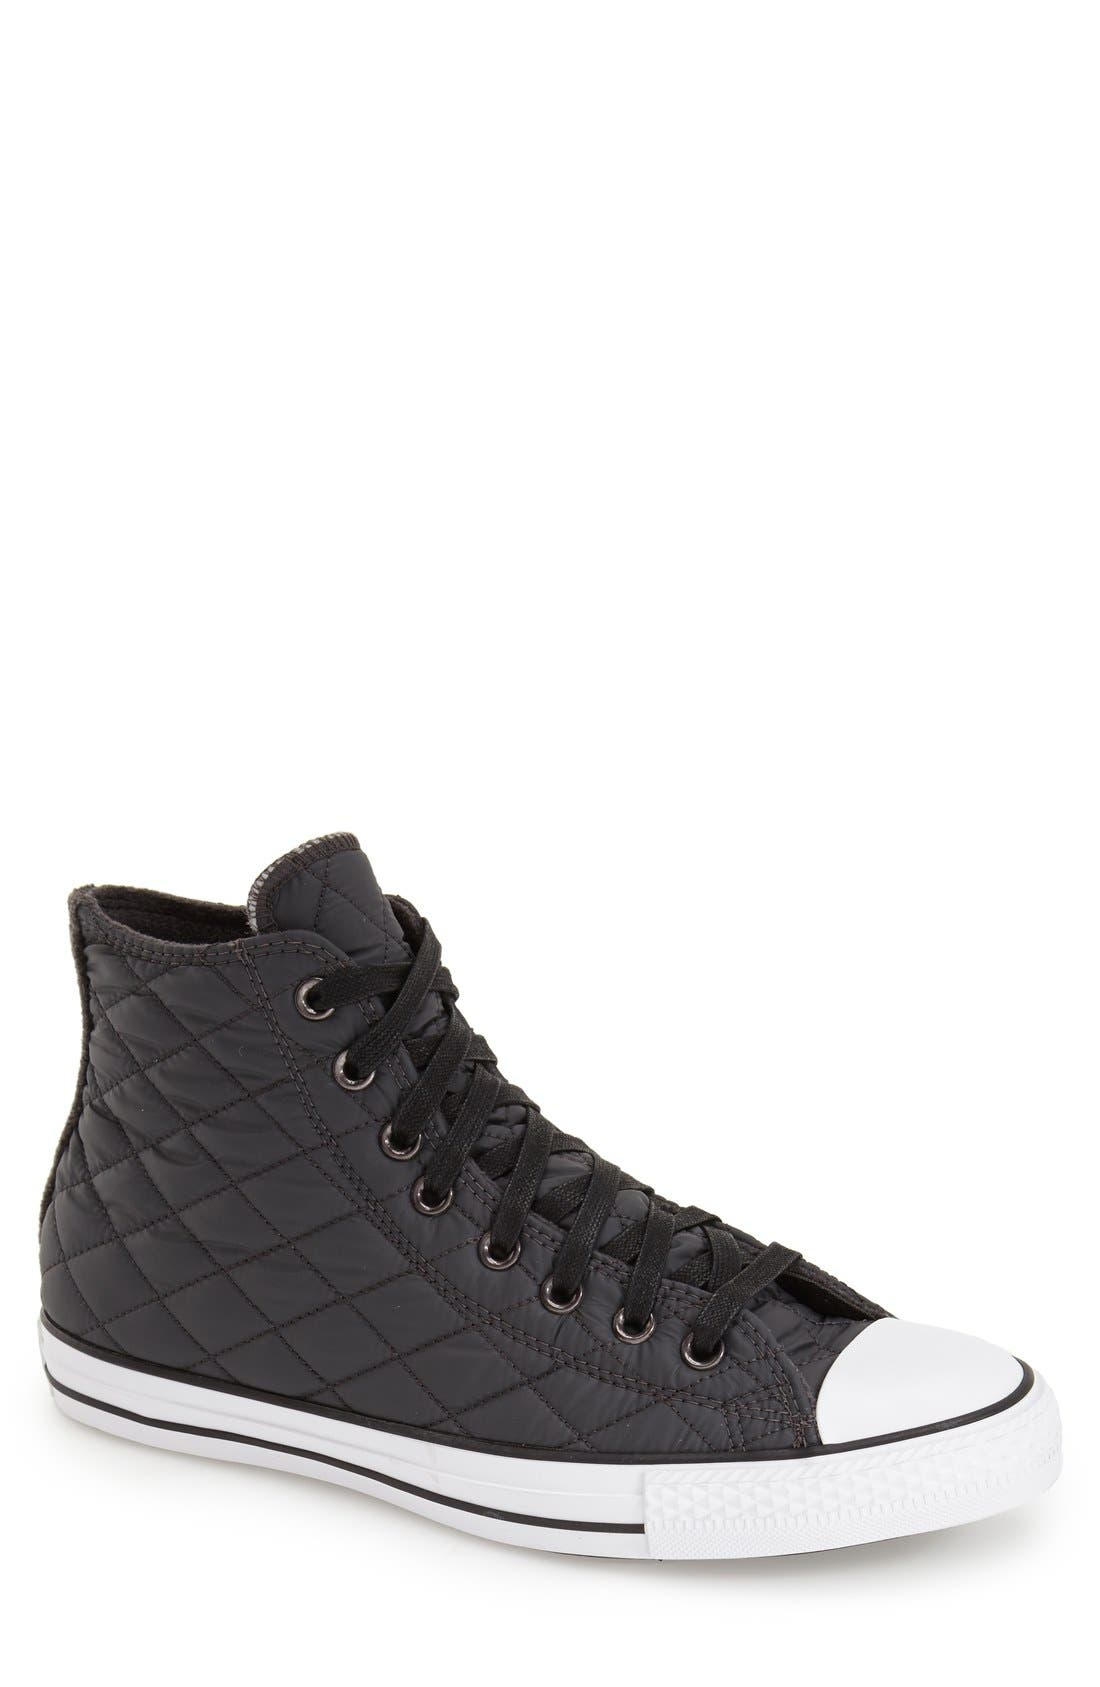 CONVERSE Chuck Taylor<sup>®</sup> All Star<sup>®</sup> Quilted High Top Sneaker, Main, color, 020